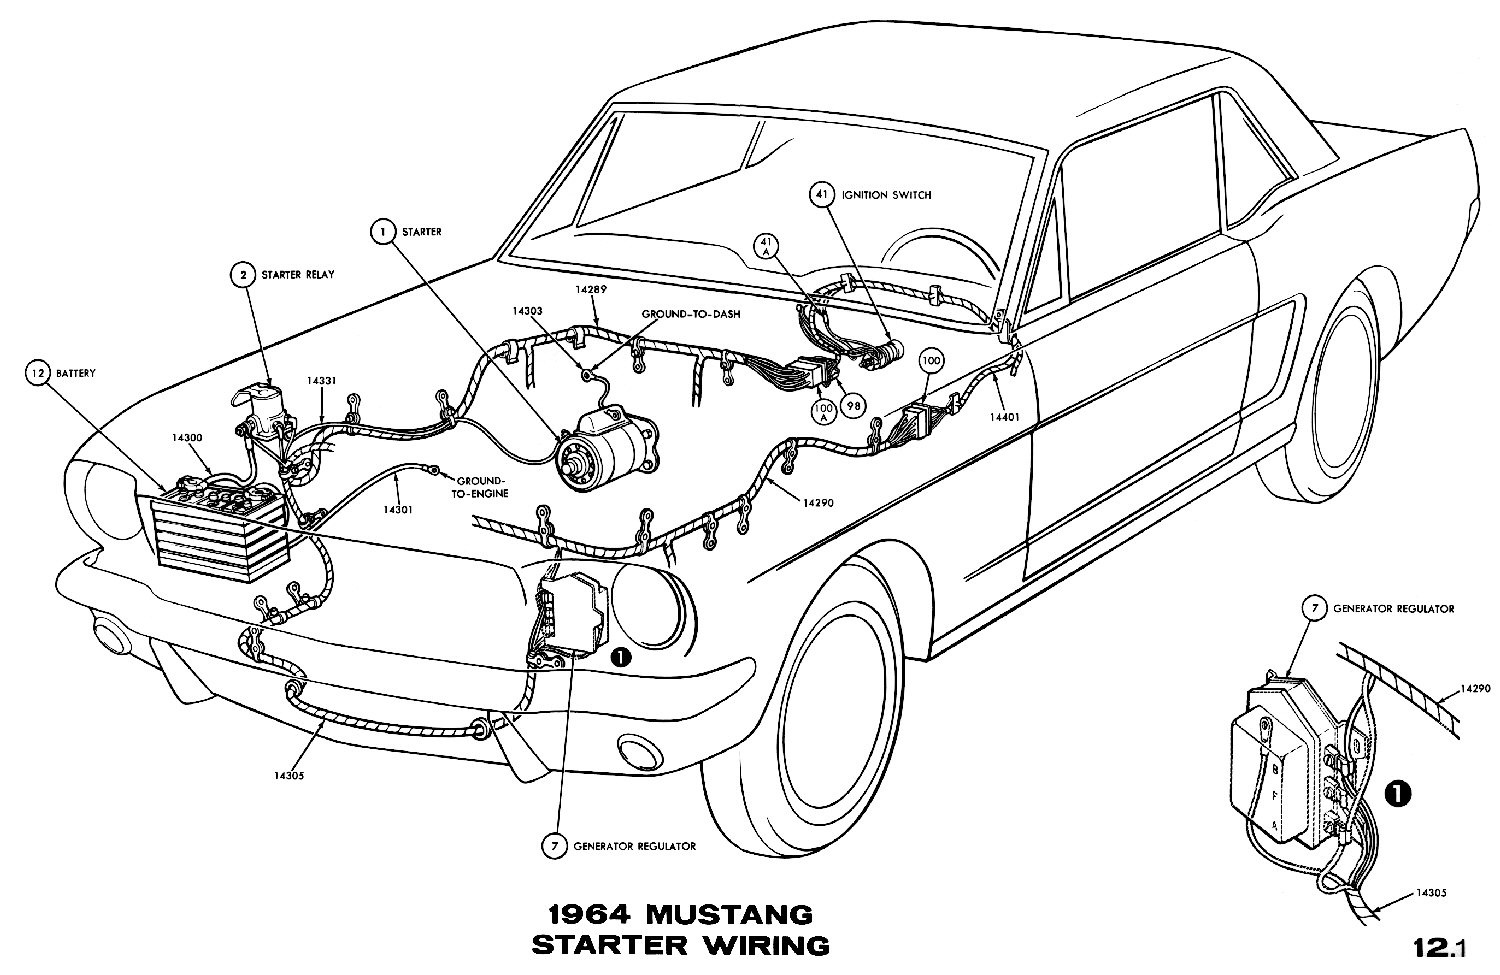 1965 Mustang Starter Wiring Quick Start Guide Of Diagram Ford Alternator 1964 Diagrams Average Joe Restoration Rh Averagejoerestoration Com 65 Relay